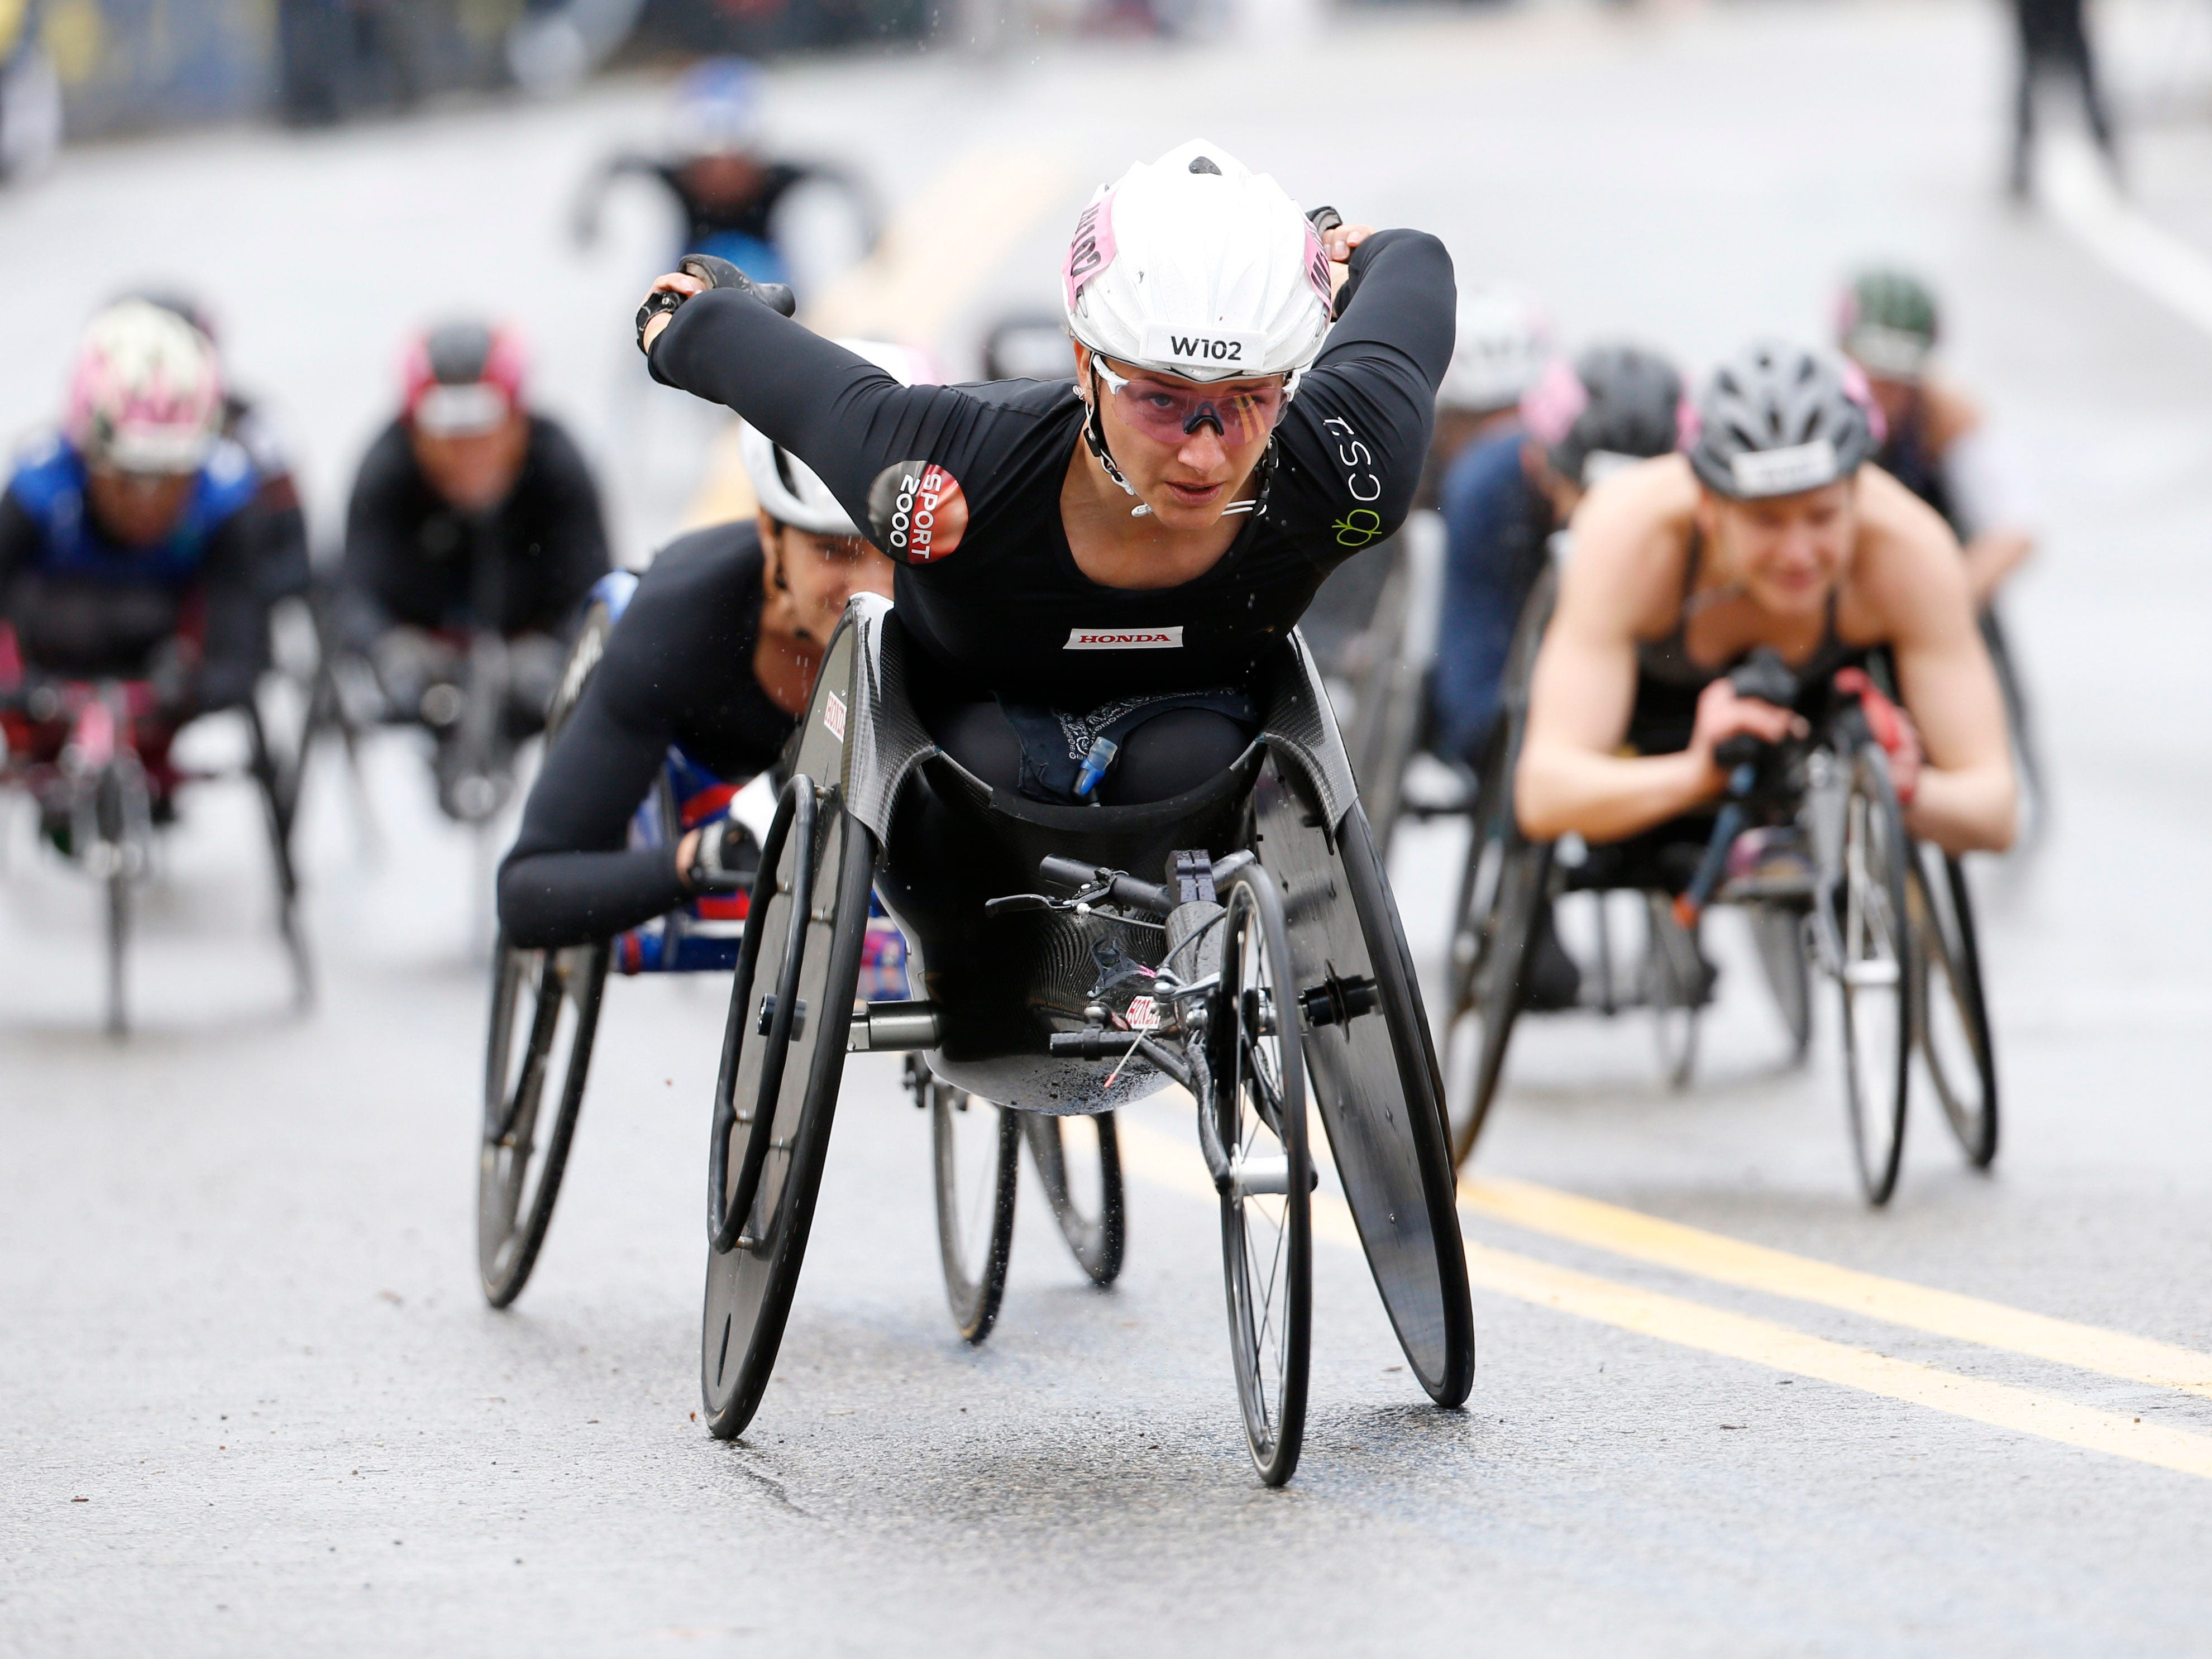 General view of the women's wheelchair division start during the 2019 Boston Marathon.